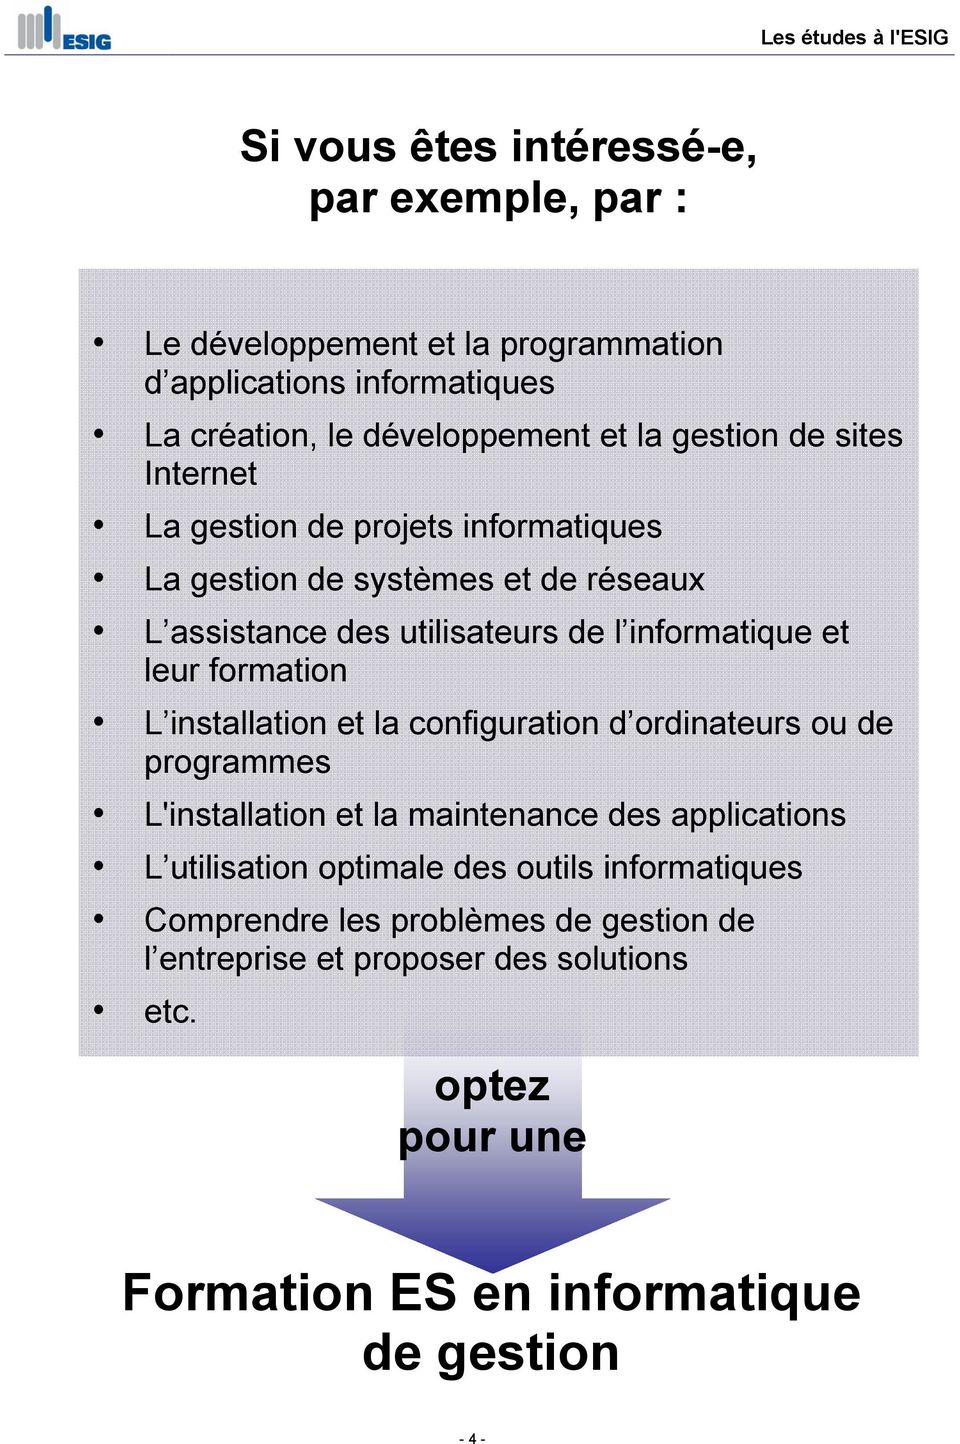 informatique et leur formation L installation et la configuration d ordinateurs ou de programmes L'installation et la maintenance des applications L